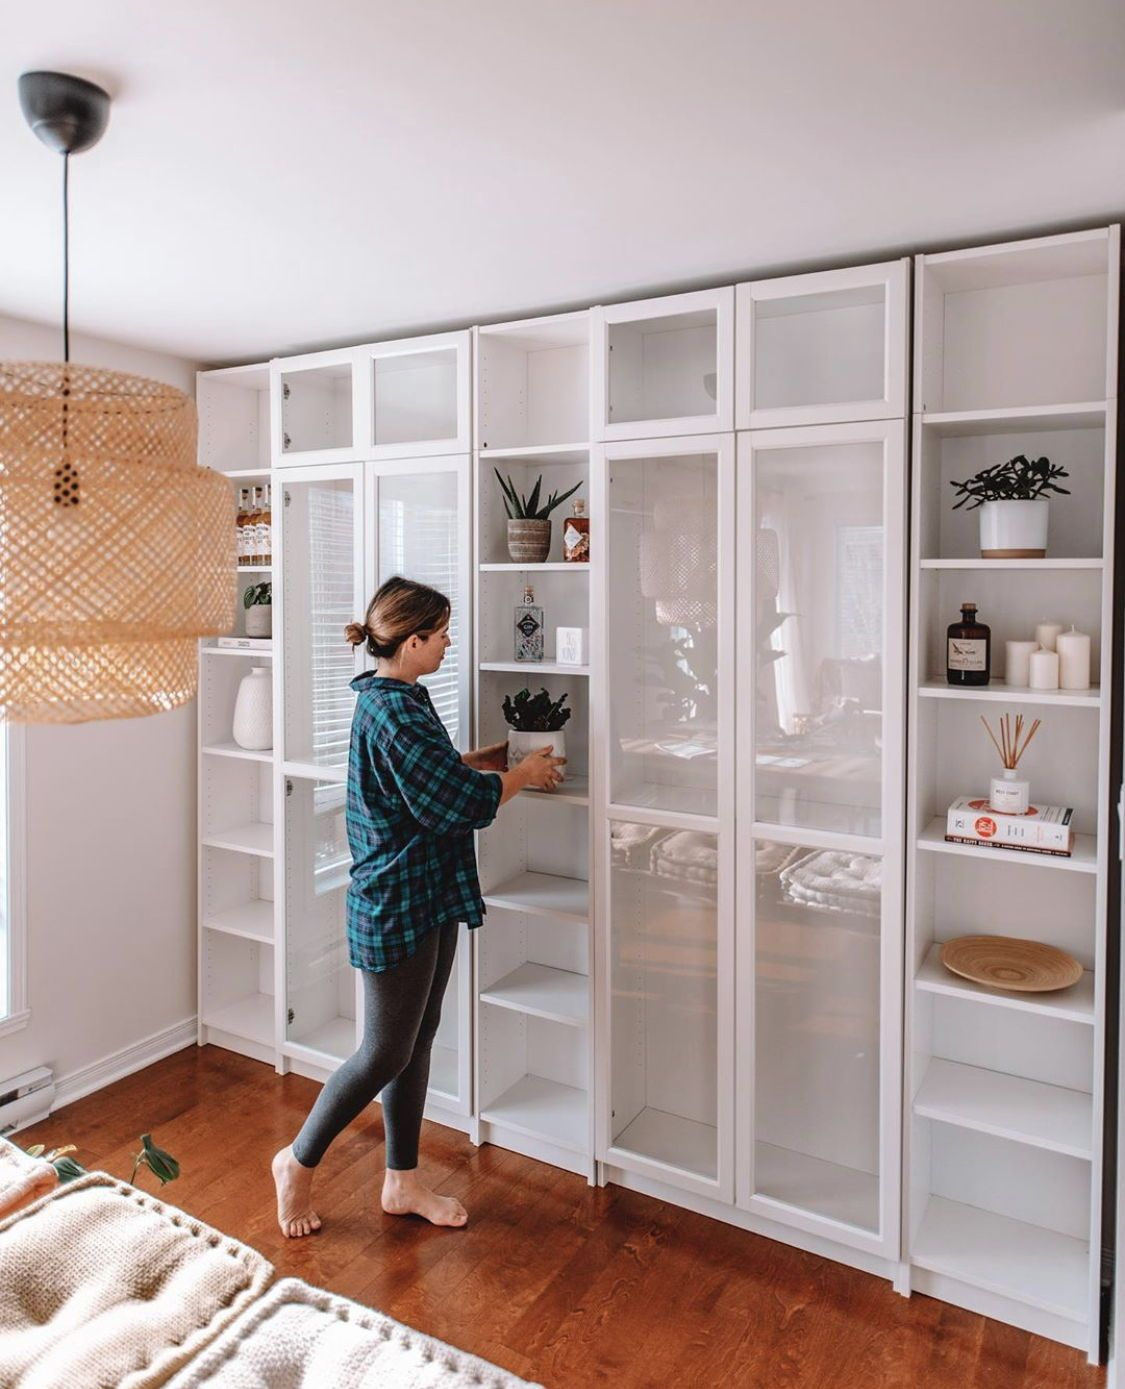 PT 4: DIY BUILT-INS USING IKEA BILLY BOOKCASES